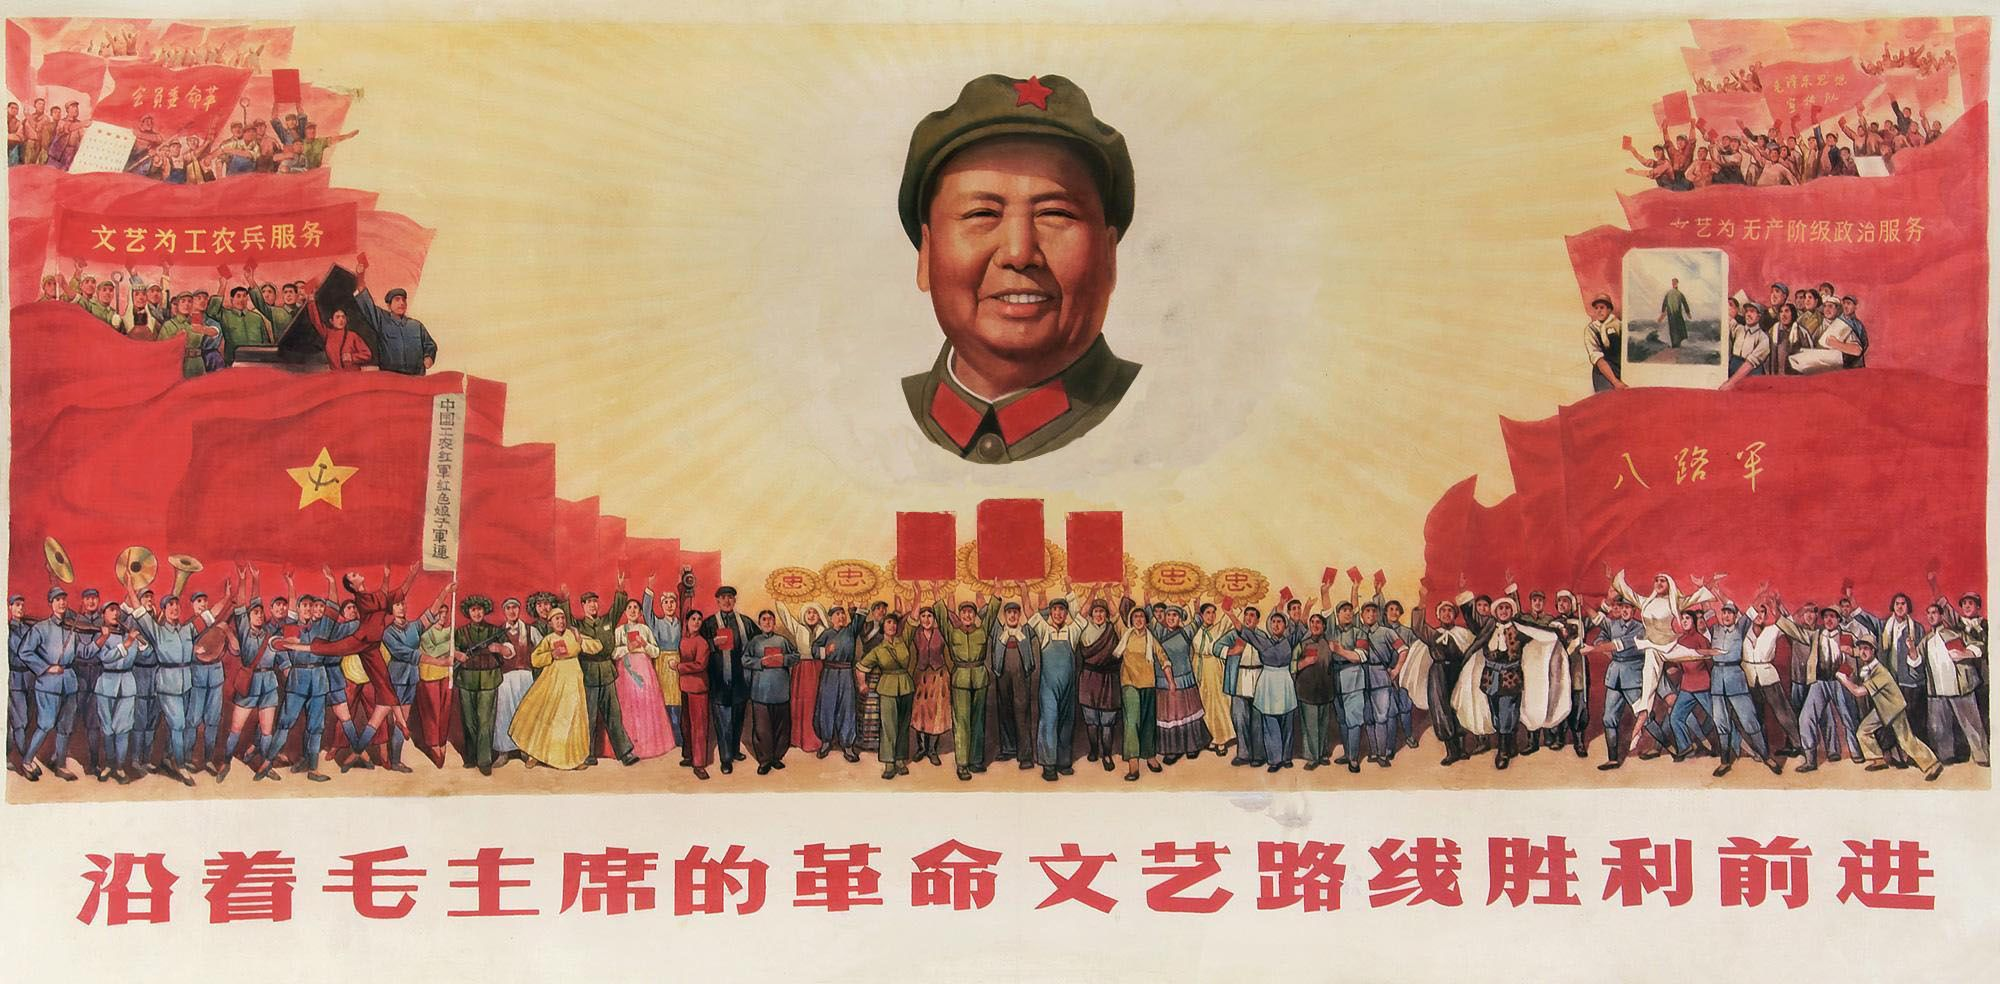 mao zedong and his communist idealism in china This long march cemented mao zedong's position as leader of the chinese communists from his new home next to the forbidden city, mao directed radical reforms in china landlords were executed, perhaps as many as 2-5 million across the country, and their land redistributed to poor.